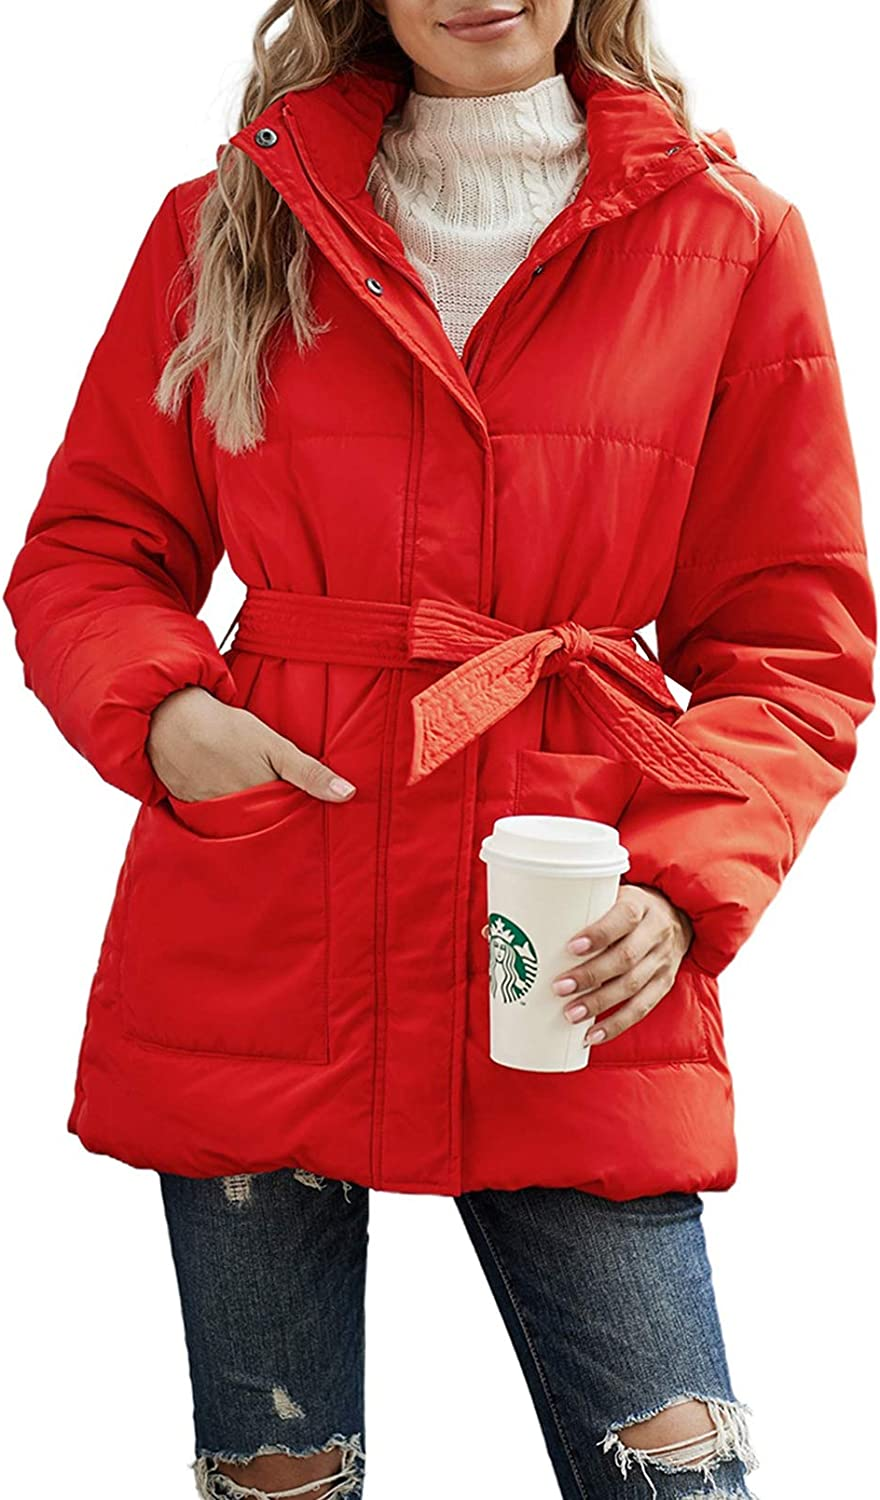 Asyoly Women's Winter Warm Zip Up Quilted Jacket Outerwear Coat with Pockets